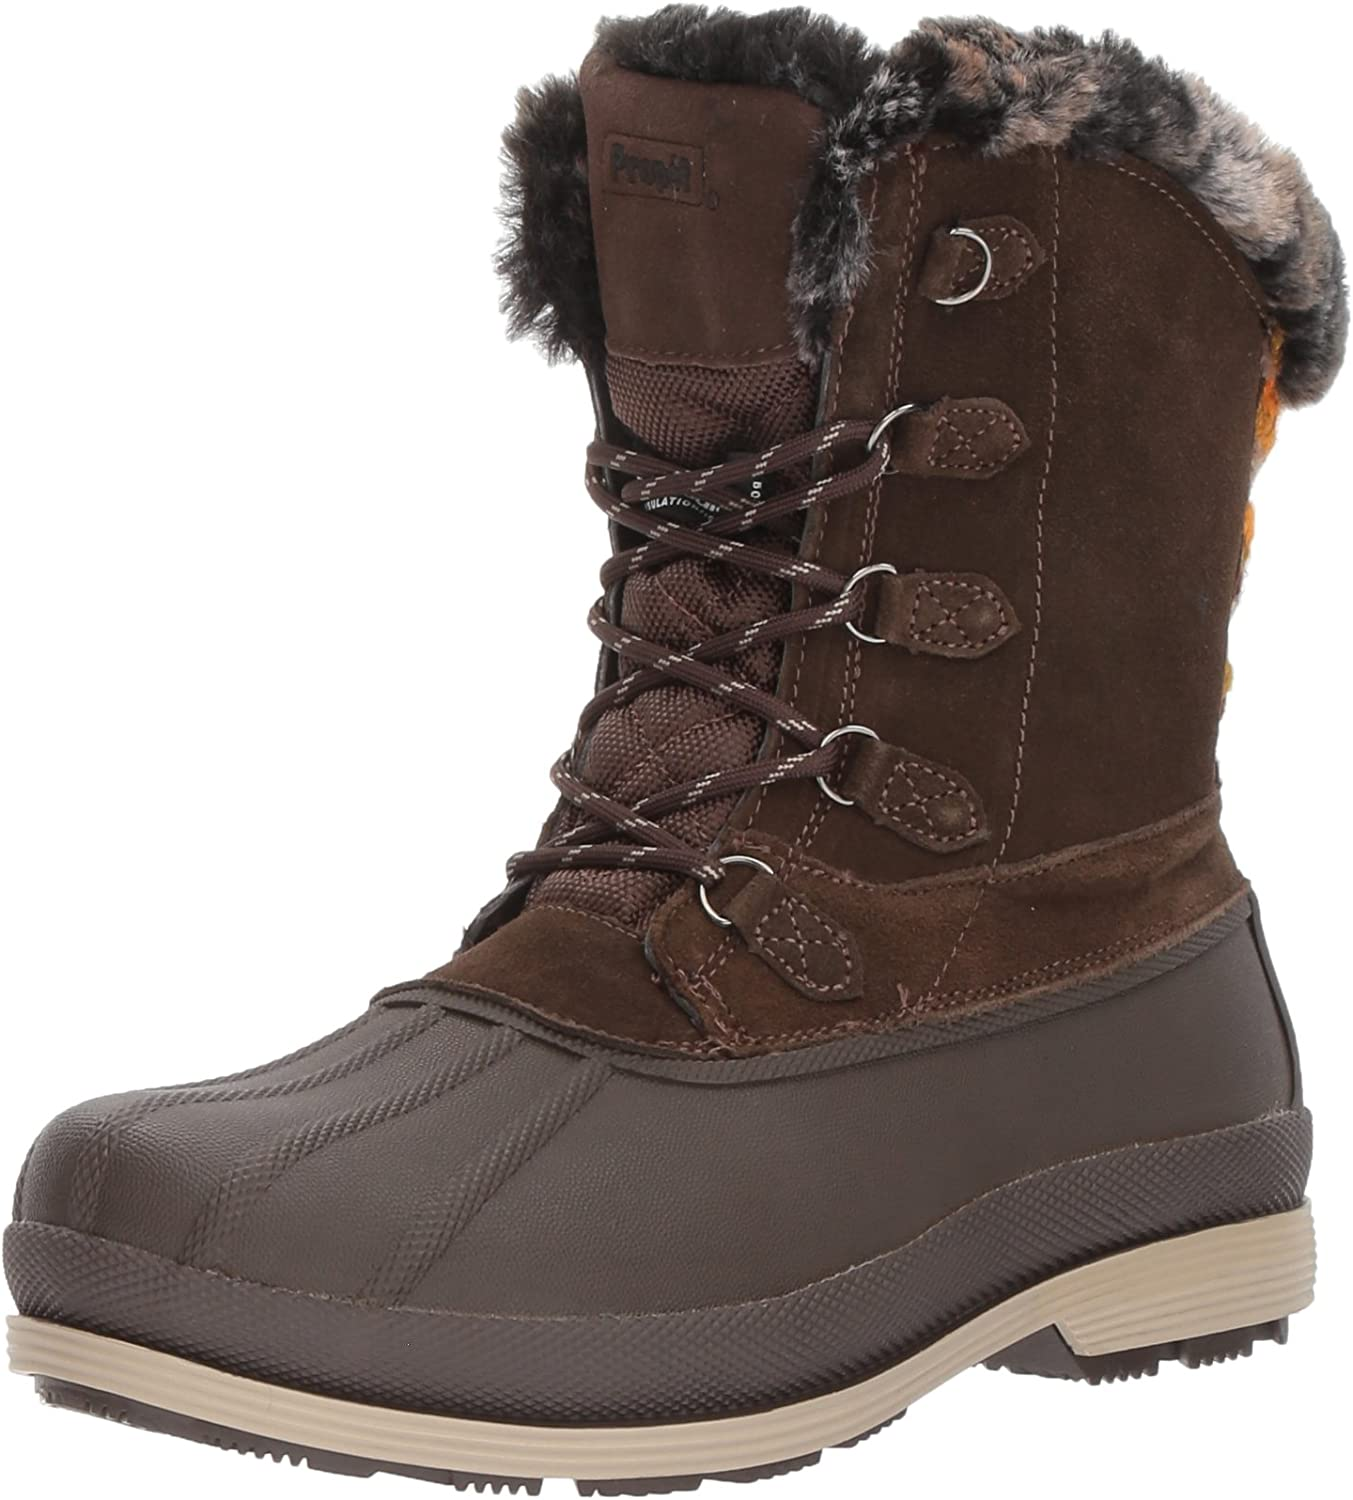 Propet Women's Lumi Tall Lace Snow Boot, Brown, 9.5 2E US